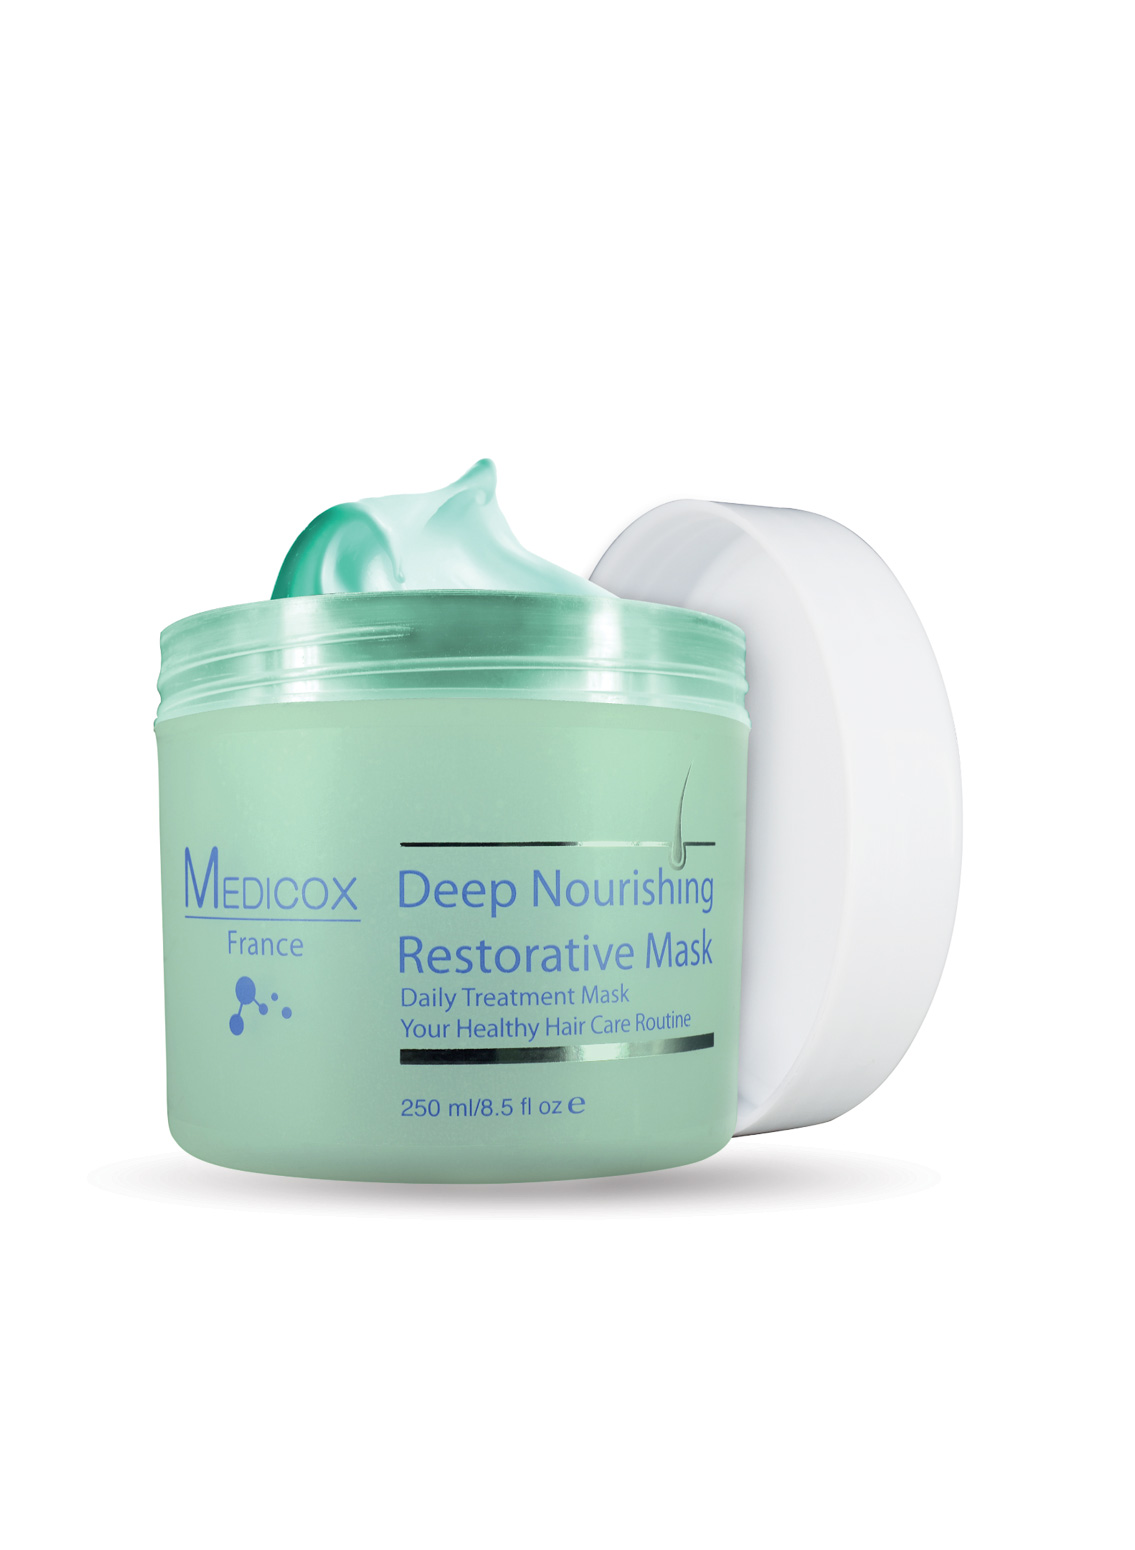 Deep Nourishing Restorative Mask